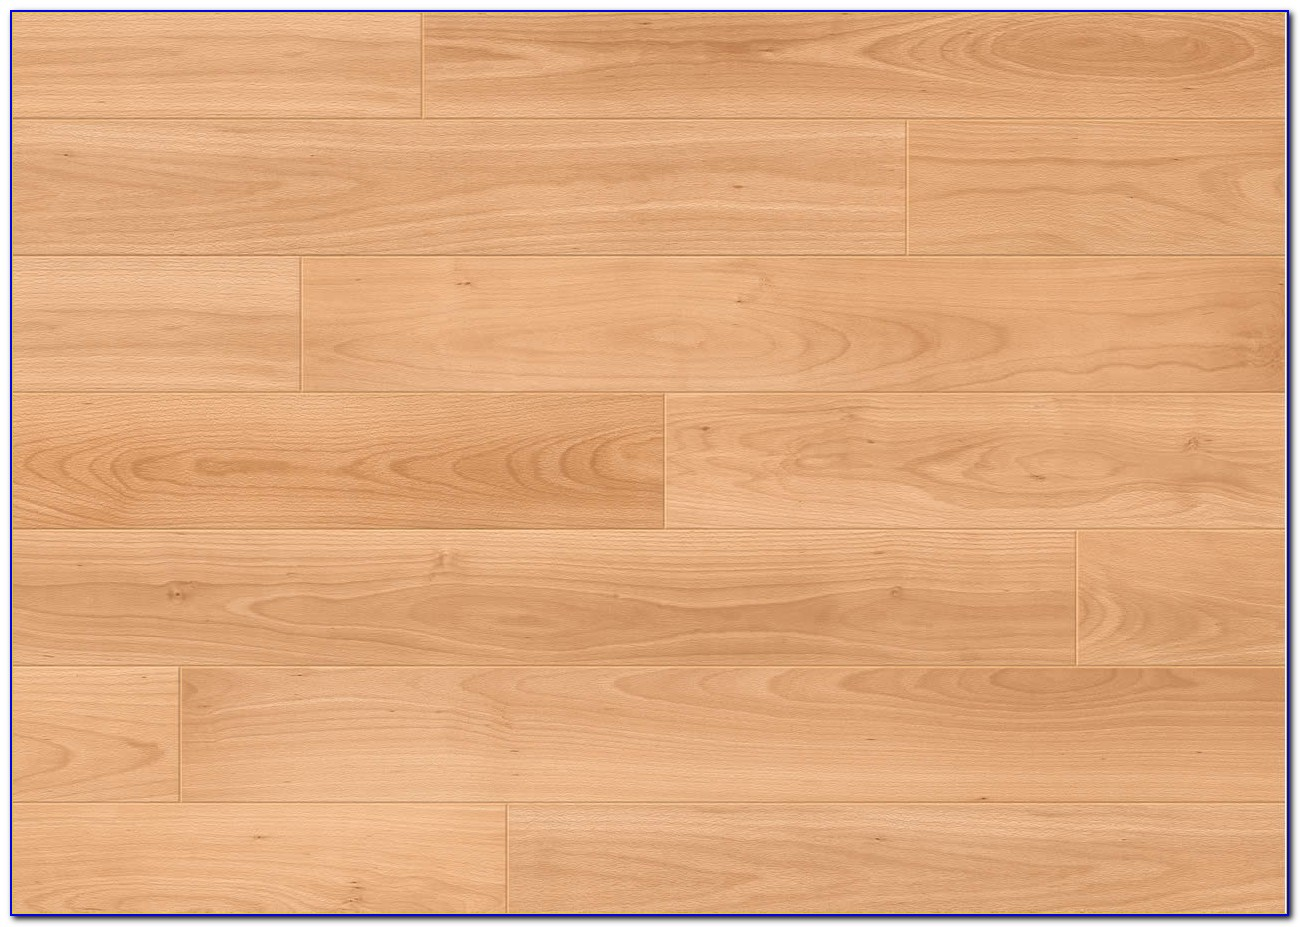 Best Mop For Laminate Floors Australia